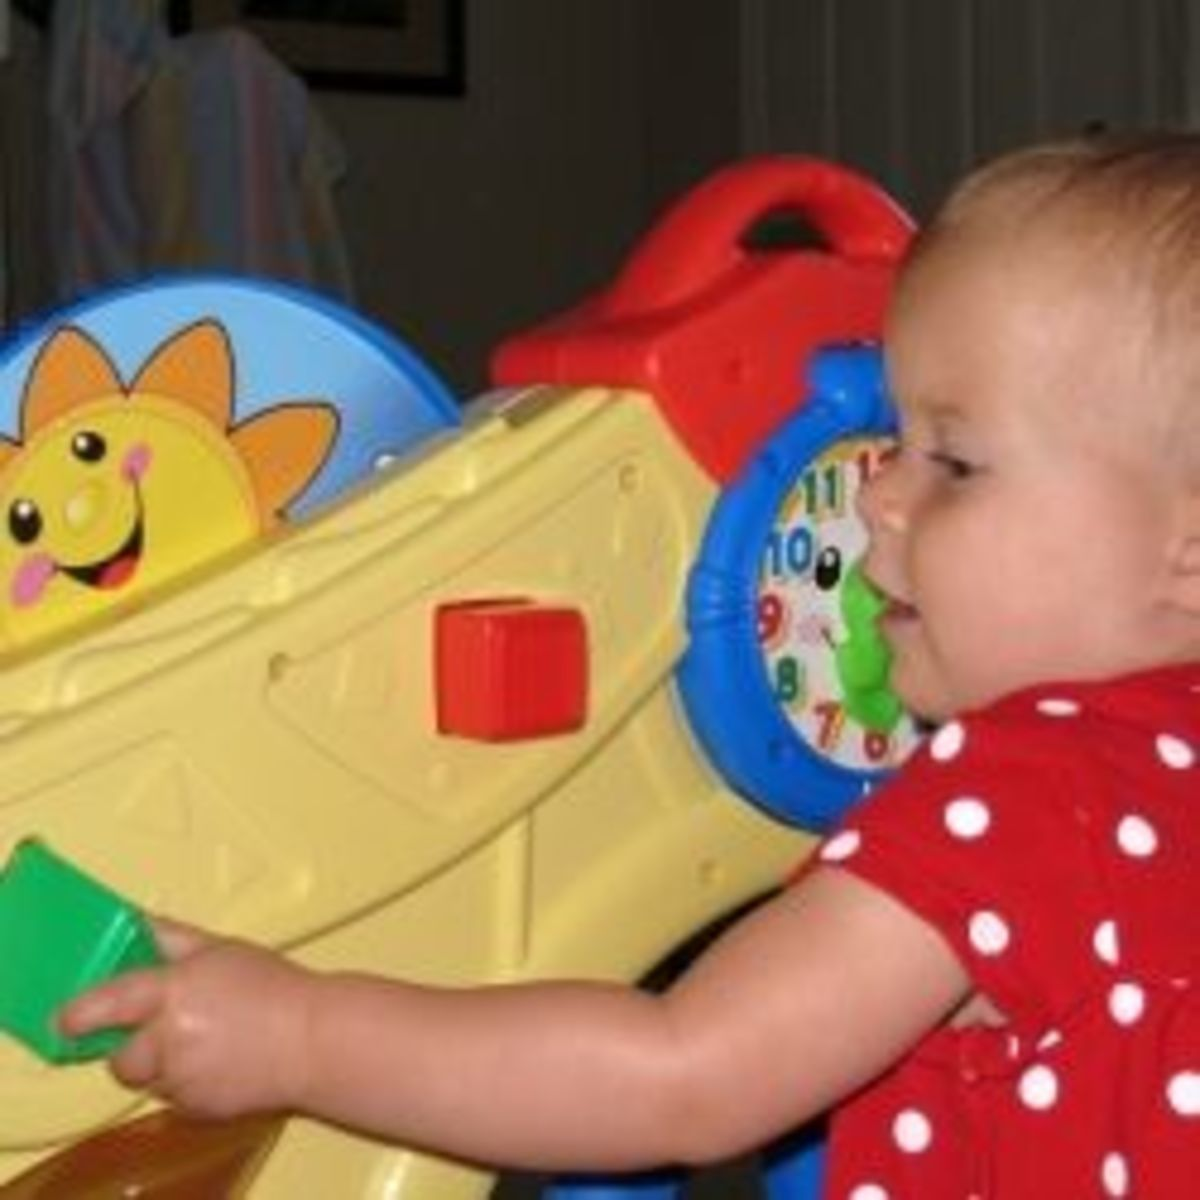 The Fisher Price Laugh and Learn Learning Home